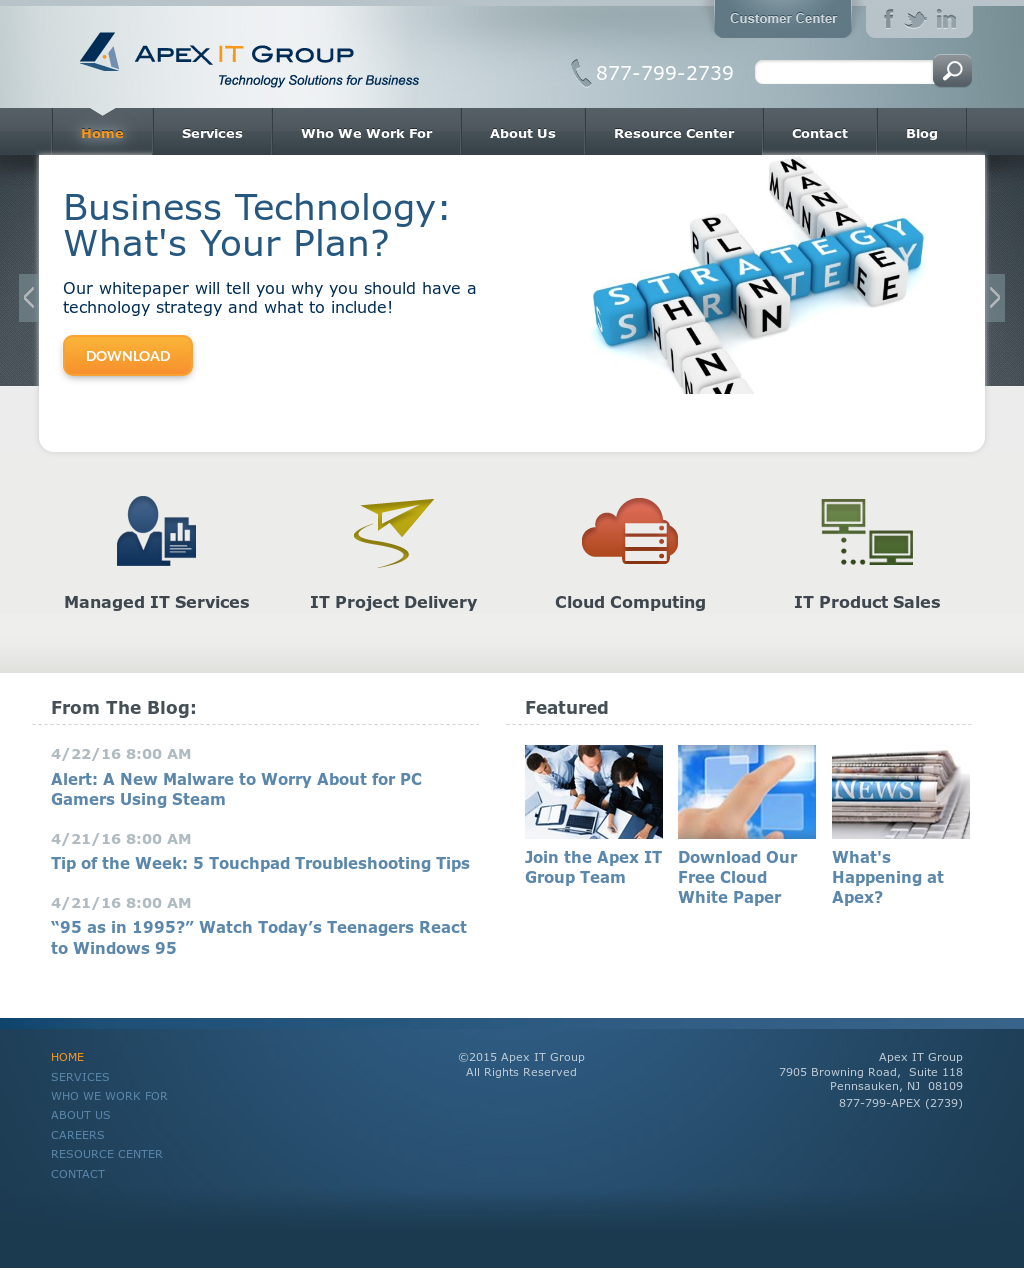 Apex It Group Competitors, Revenue and Employees - Owler